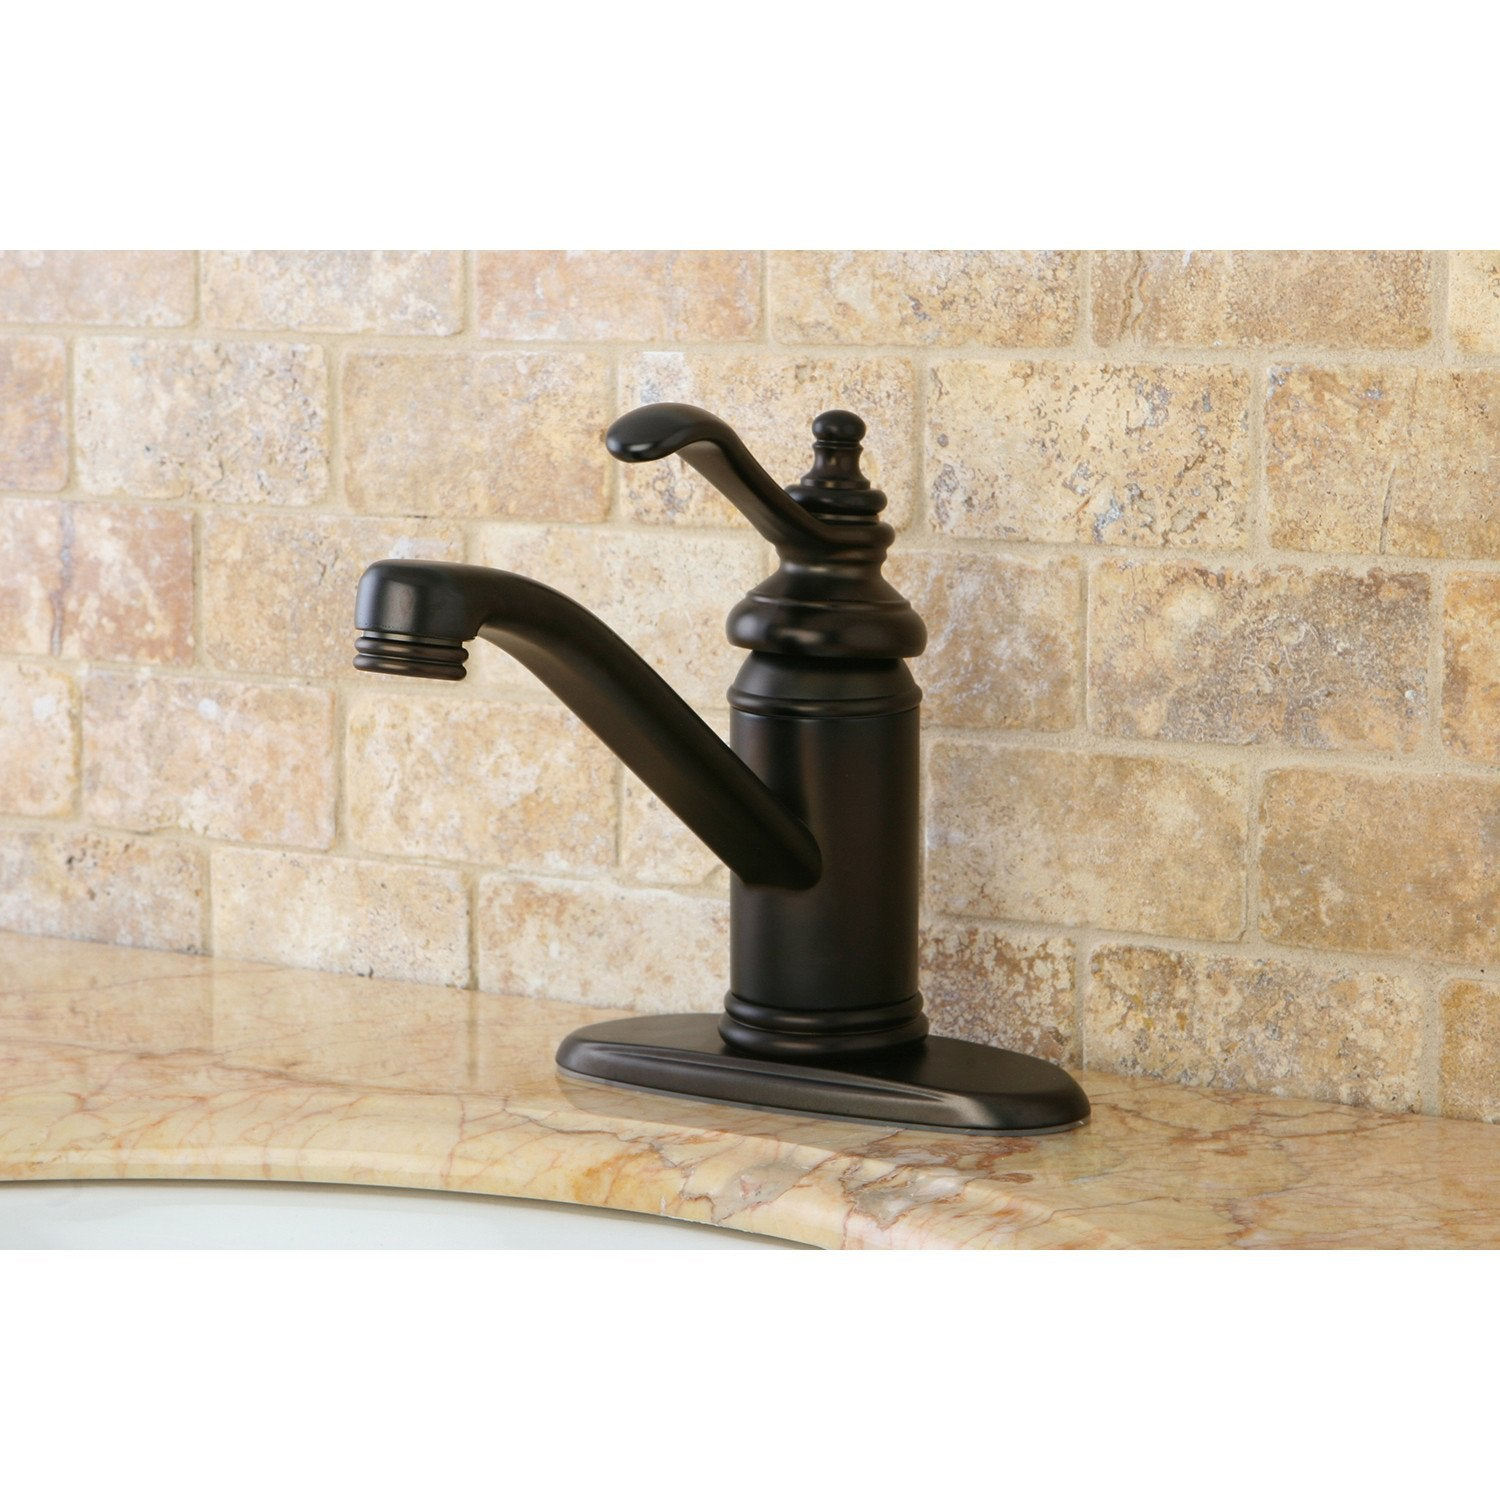 Oil Rubbed Bronze Templeton Single Handle Bathroom Faucet W/Push Drain KS3405TL